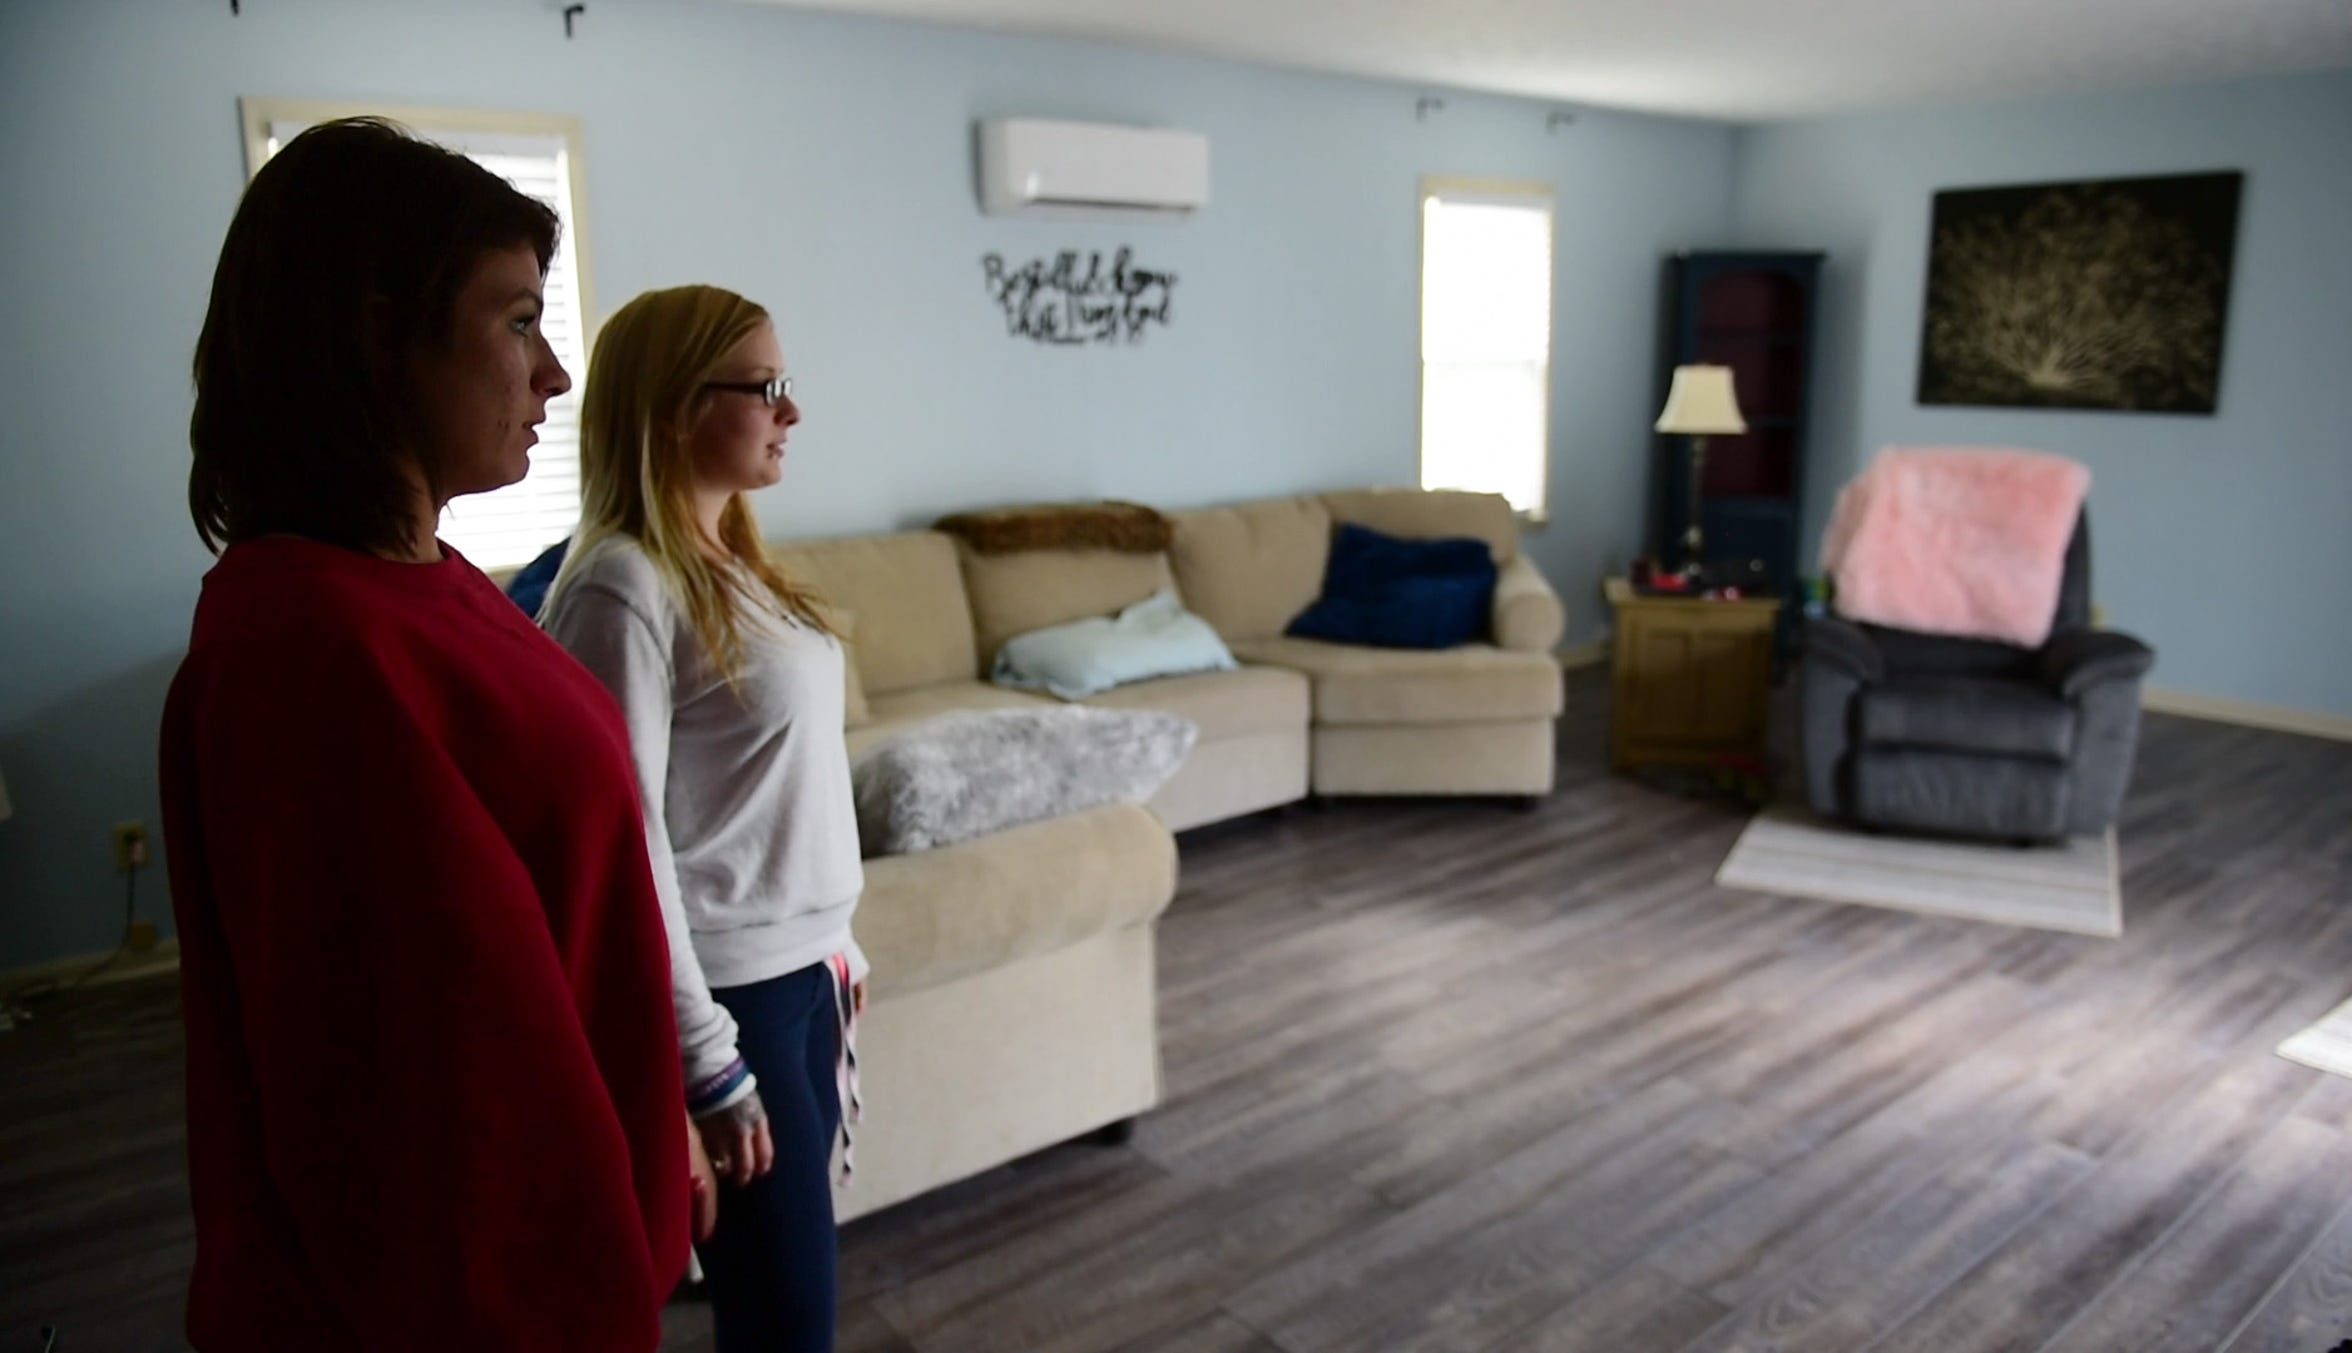 Recovering meth addict Ashley Ammerman, 23, left, and recovering heroin addict Alexandria Lowery, 26, said they do chores around the house to keep their minds occupied and off off drugs.